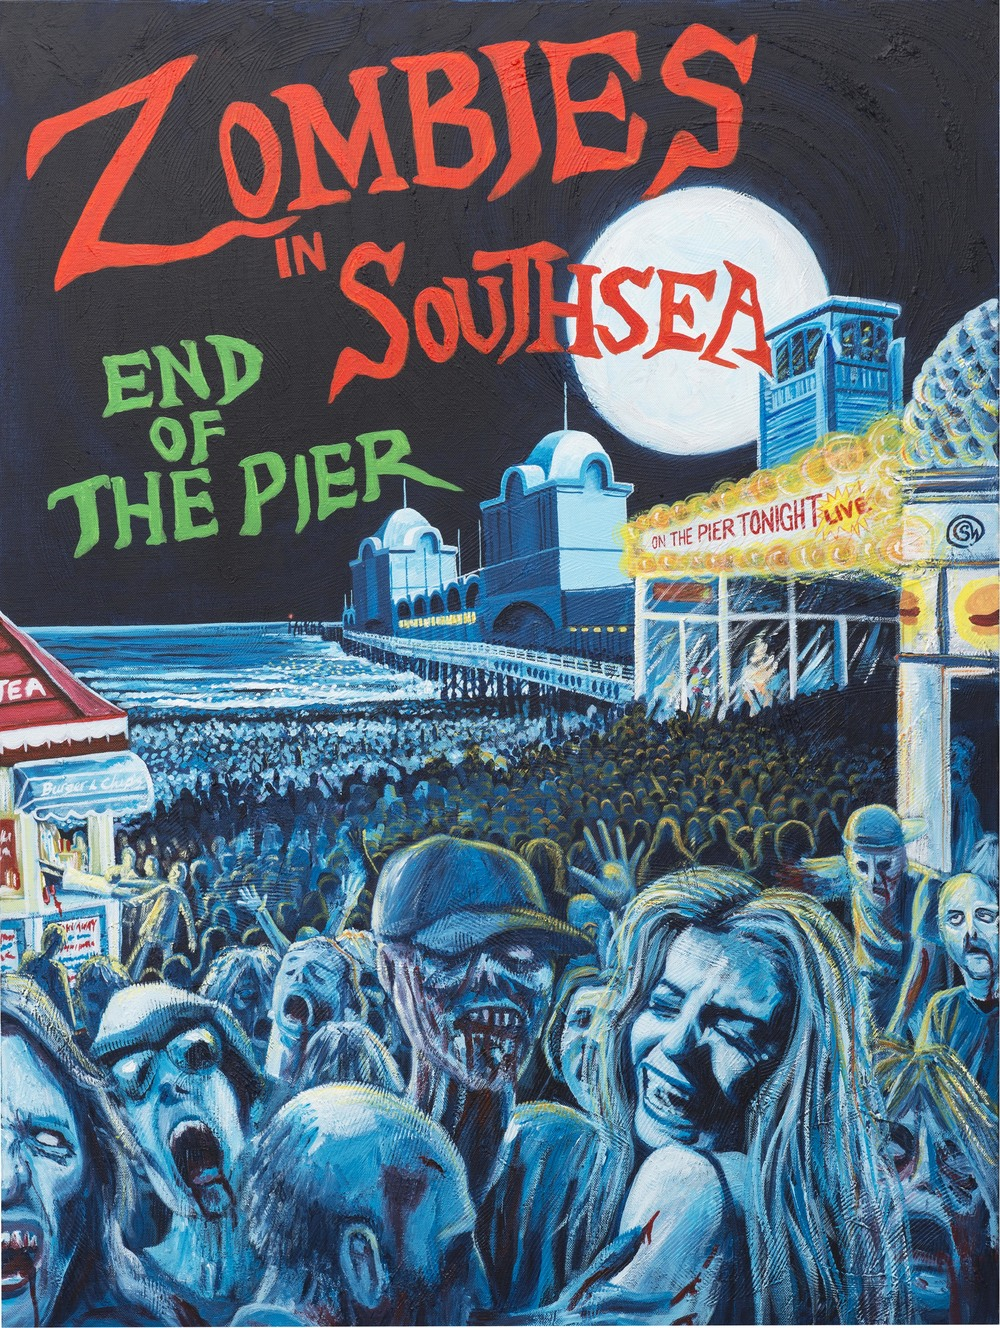 Zombies in Southsea, End of The Pier